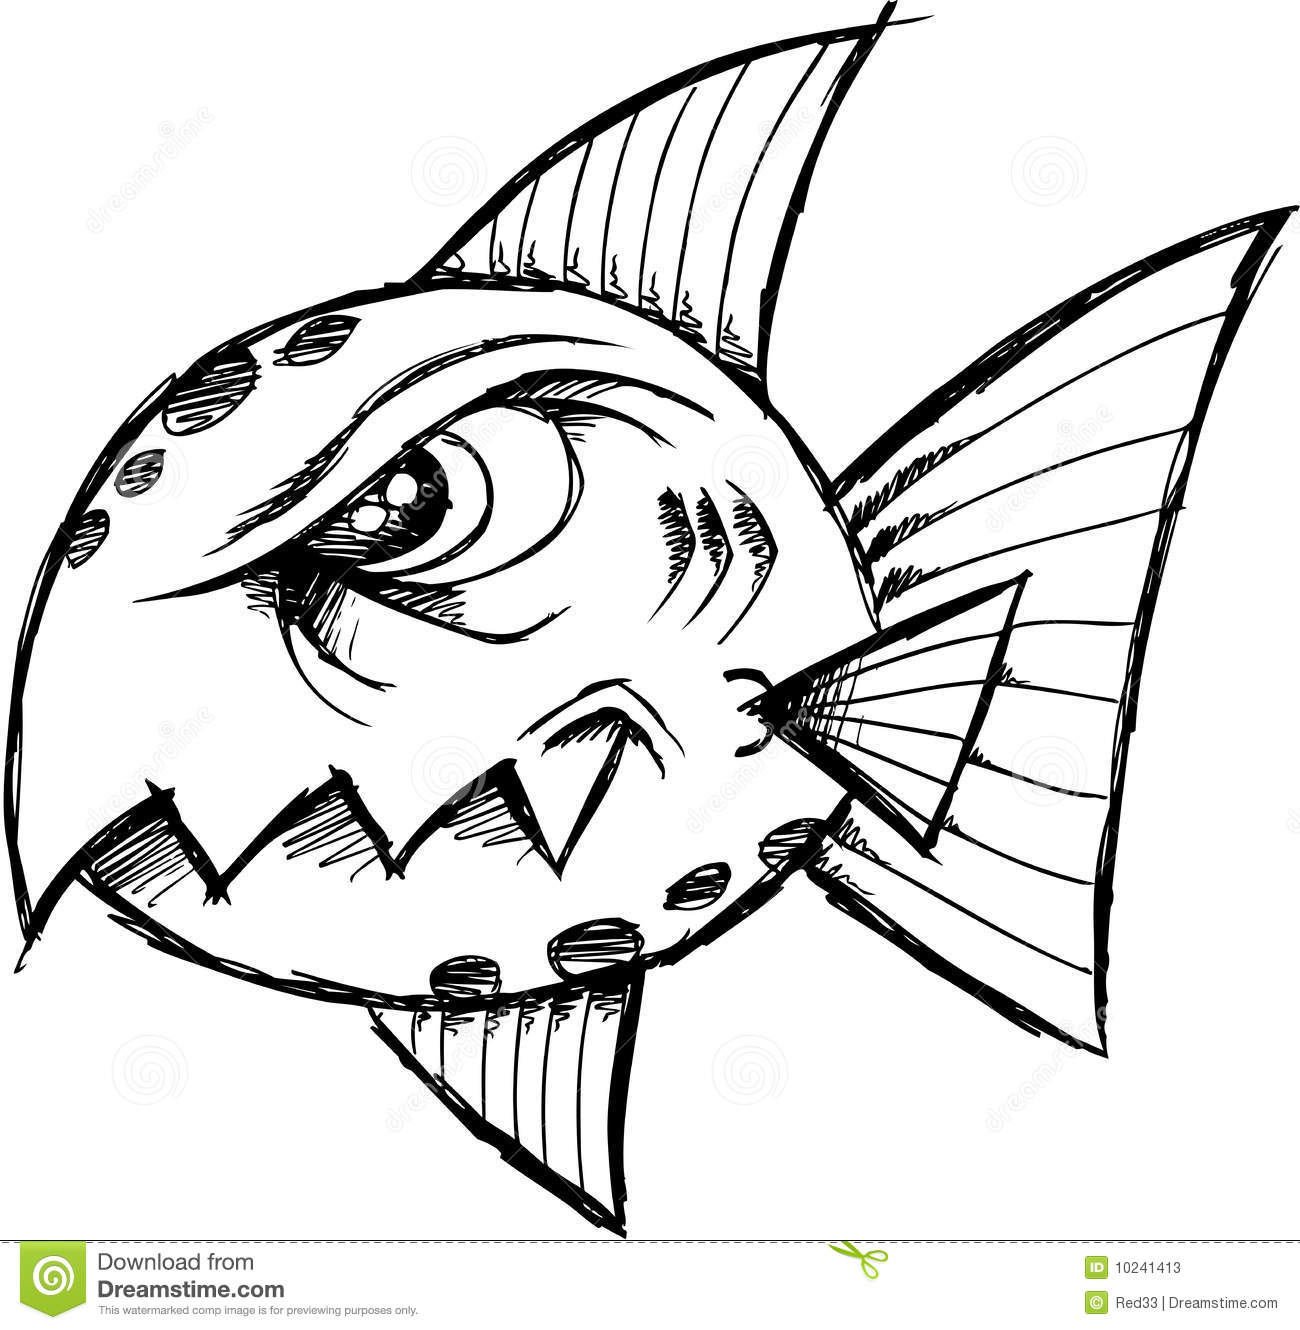 Sketchy mean fish vector stock photos image 10241413 for What does it mean to dream about fish